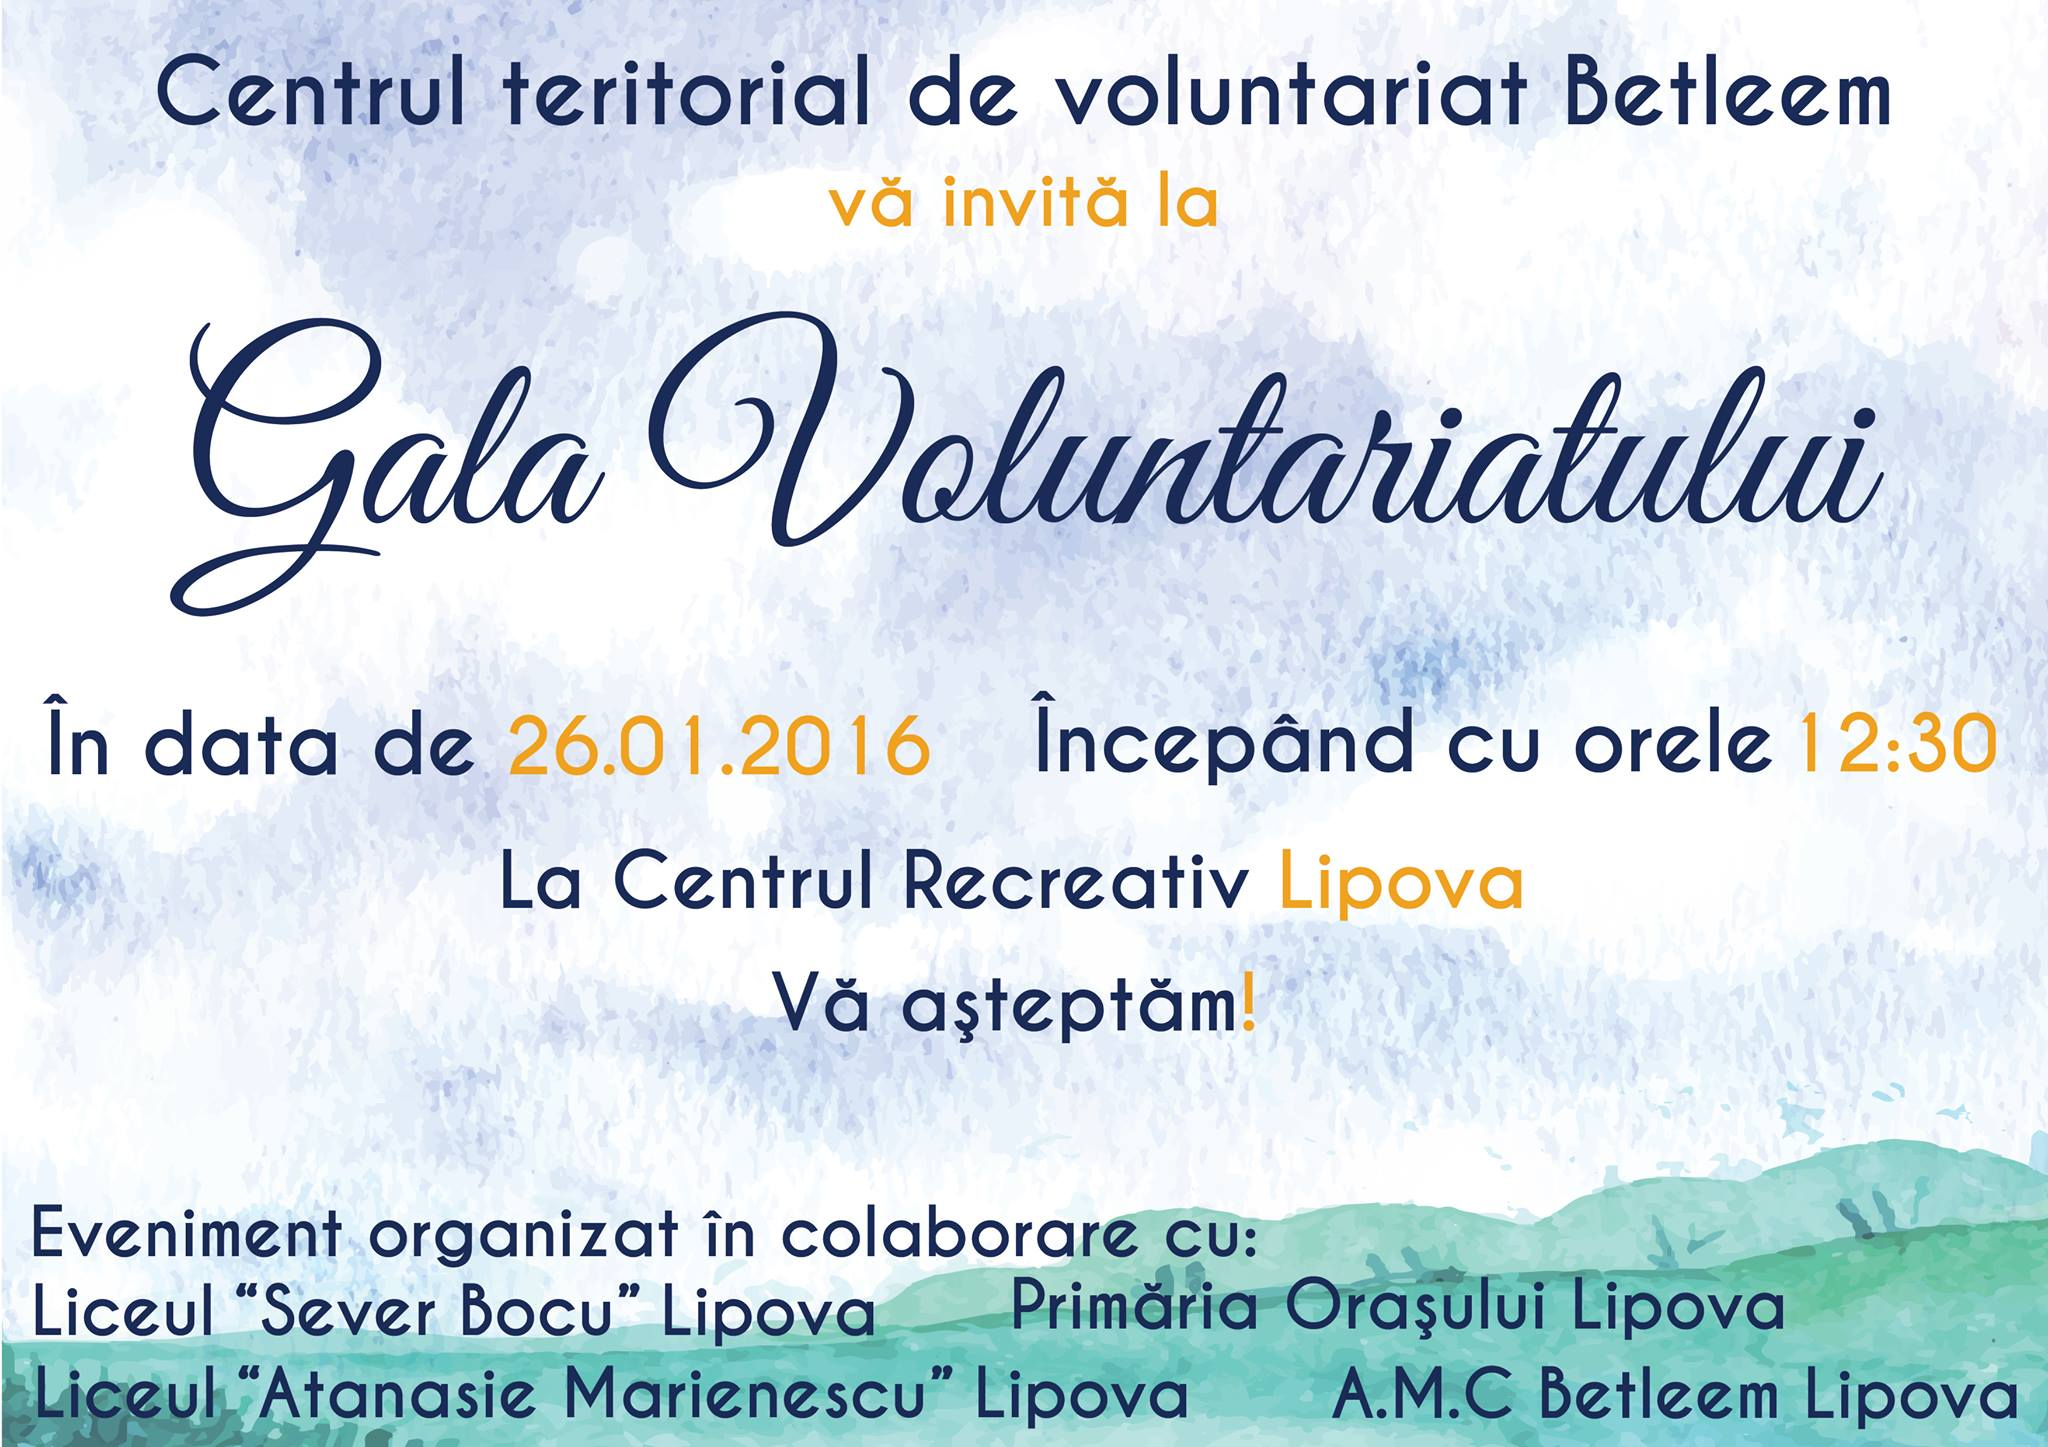 Gala Voluntariatului